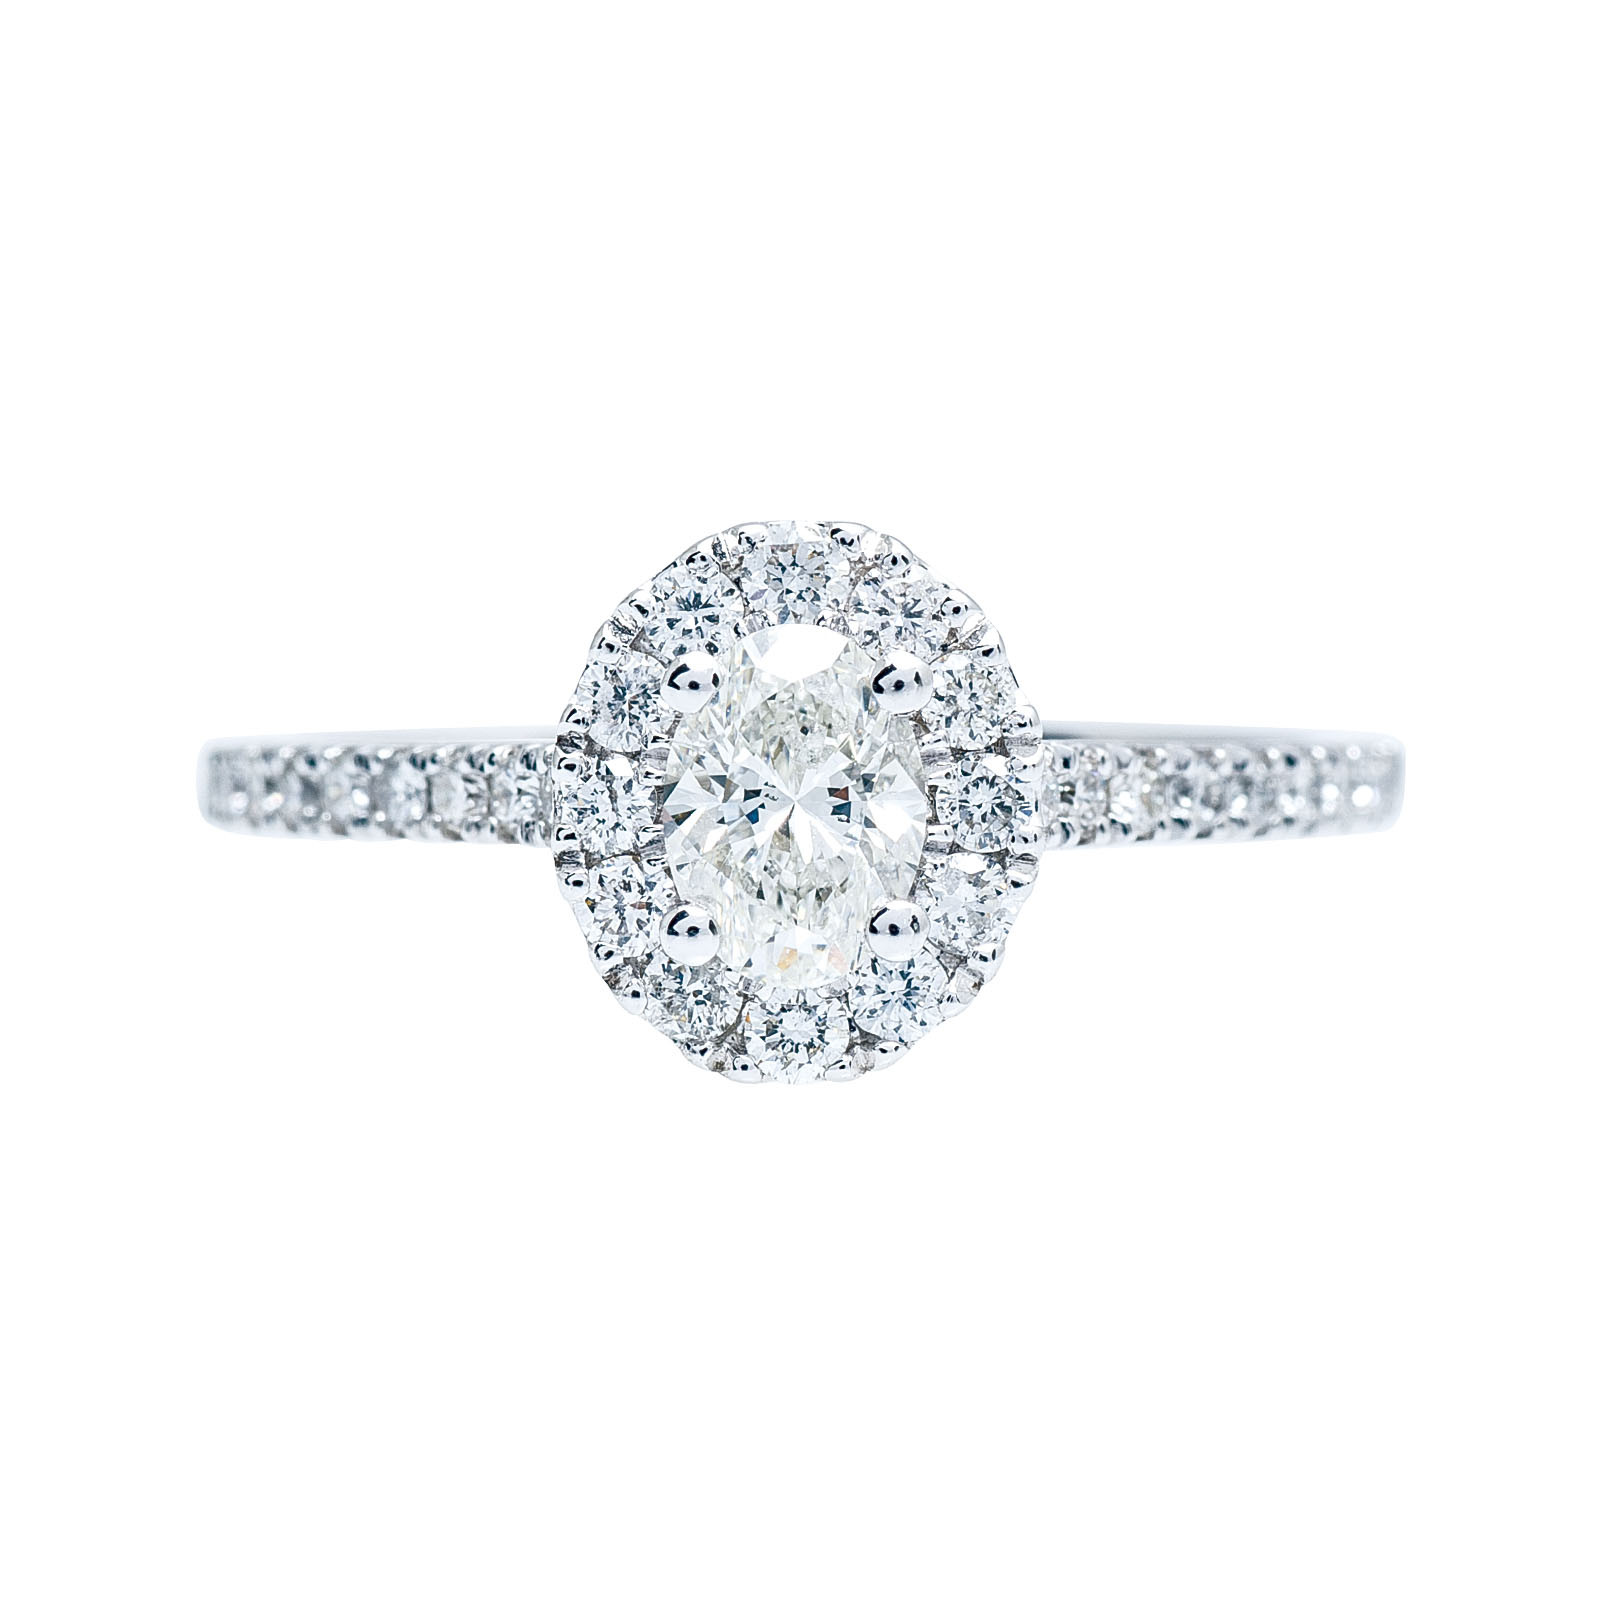 New 0.84 CTW Diamond Halo Engagement Ring